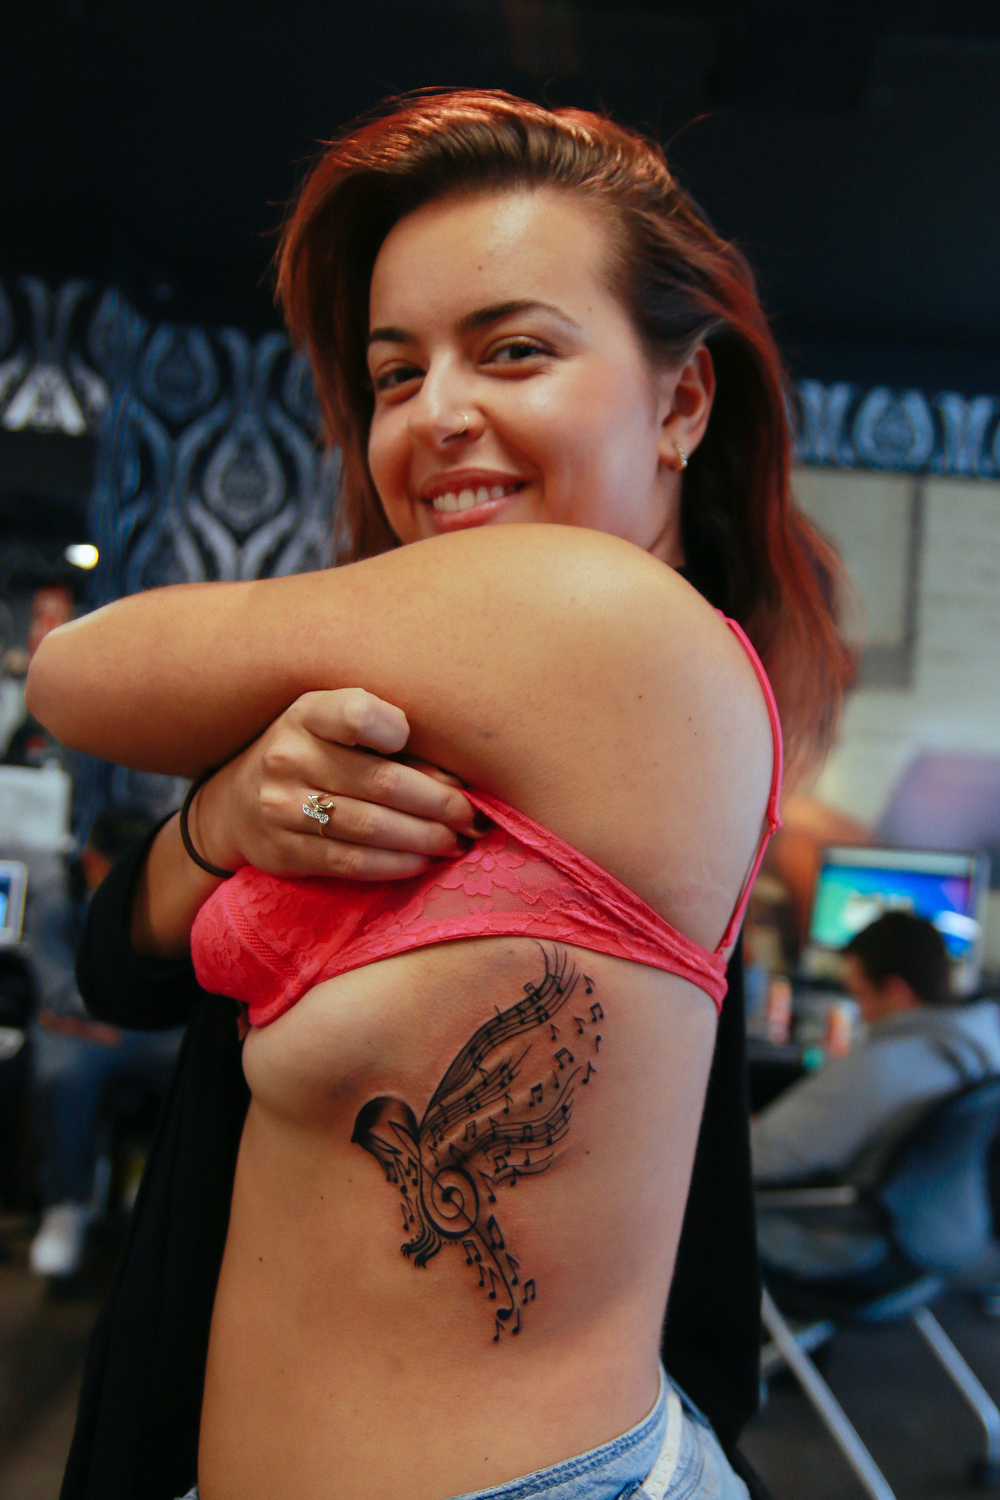 nikki-music-bird-rib-tattoo.jpg